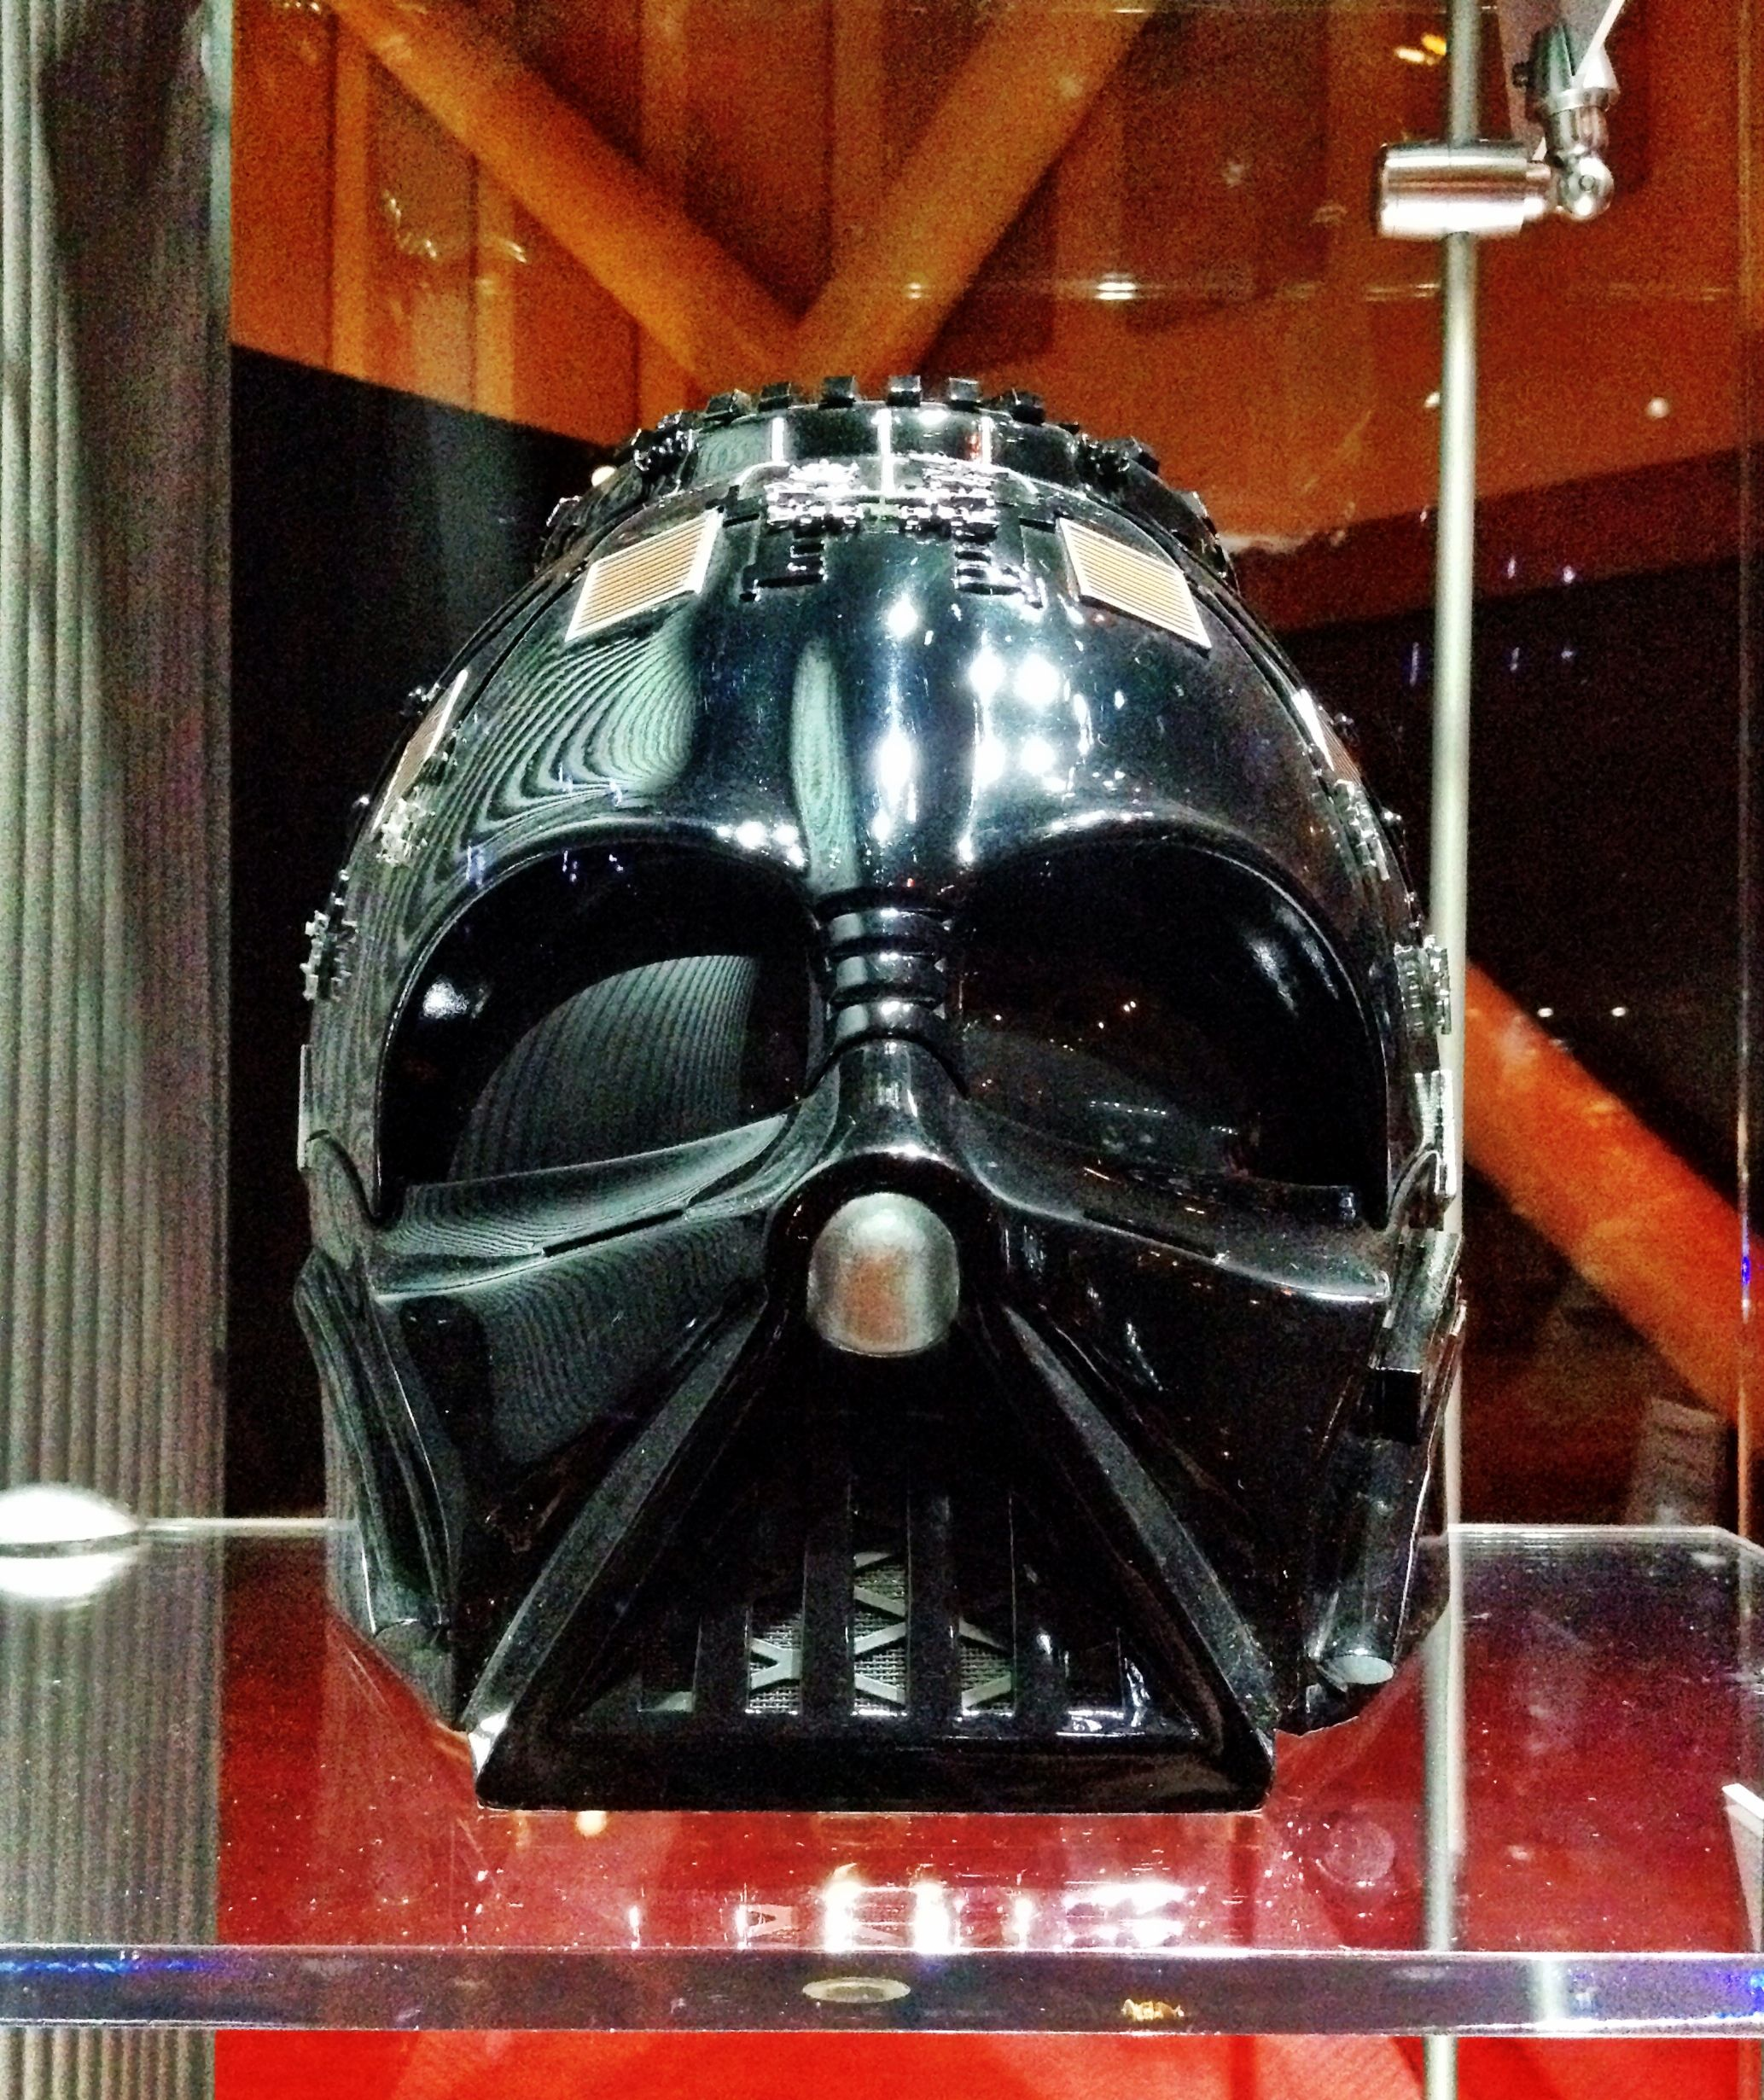 Helmet Piece From Darth Vader Used In Revenge Of The Sith Film Props Star Wars Movie Darth Vader